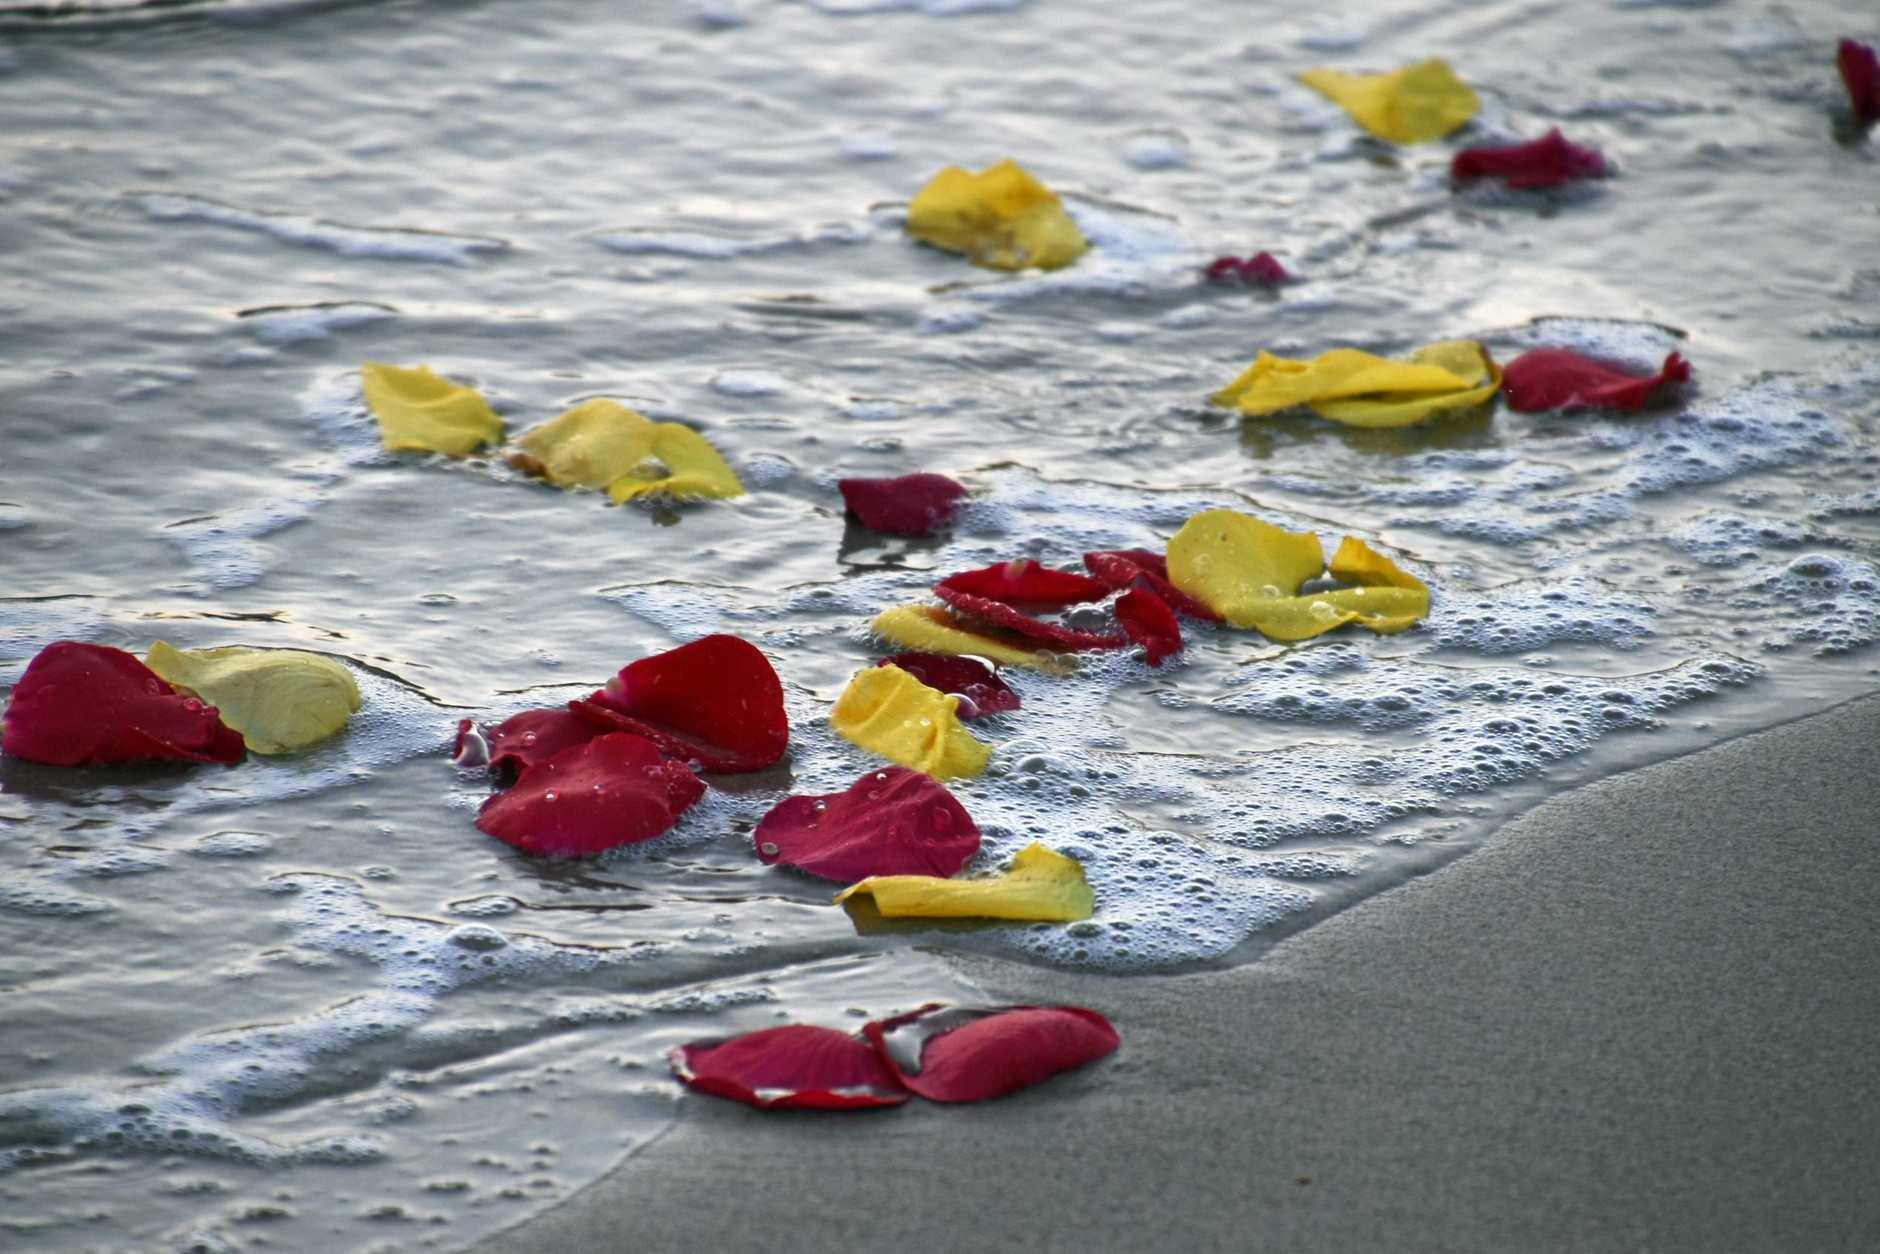 Rose petals for remembrance.